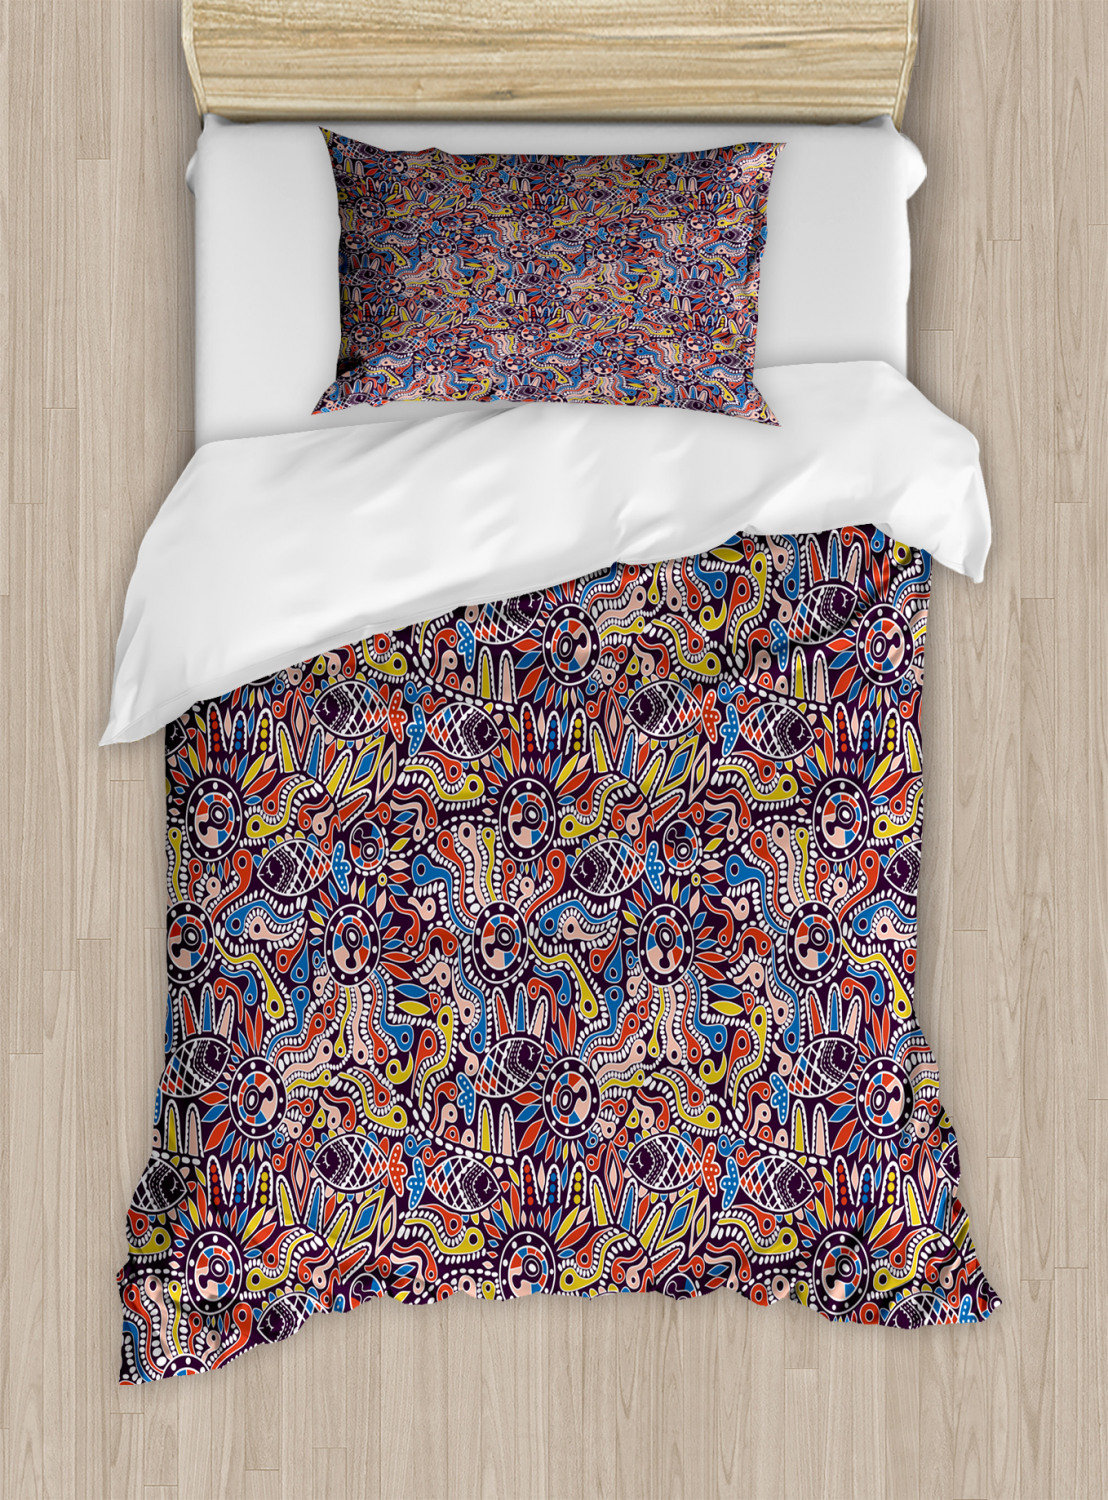 Timeless-Oriental-Duvet-Cover-Set-Twin-Queen-King-Sizes-with-Pillow-Shams thumbnail 79